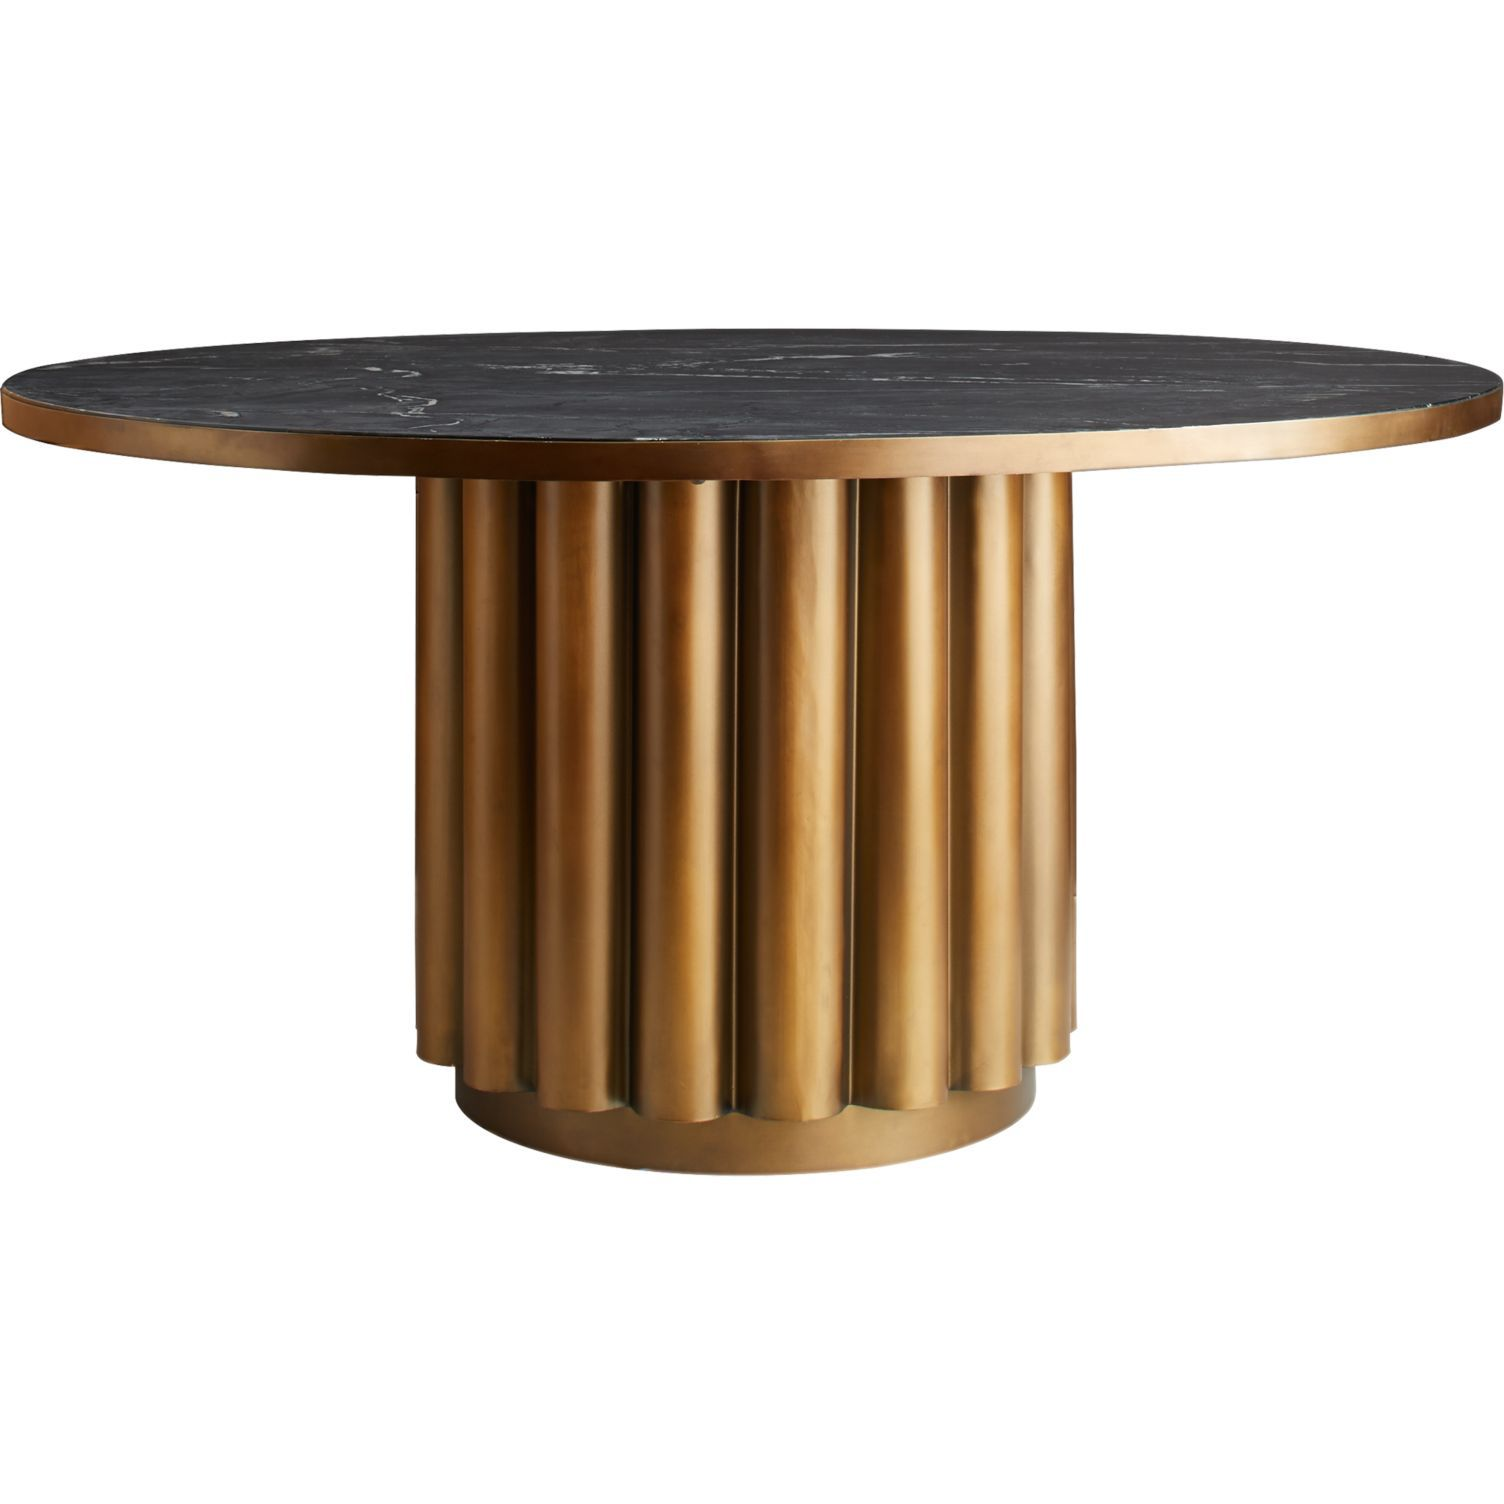 CB2 Cypher Black Marble Dining Table